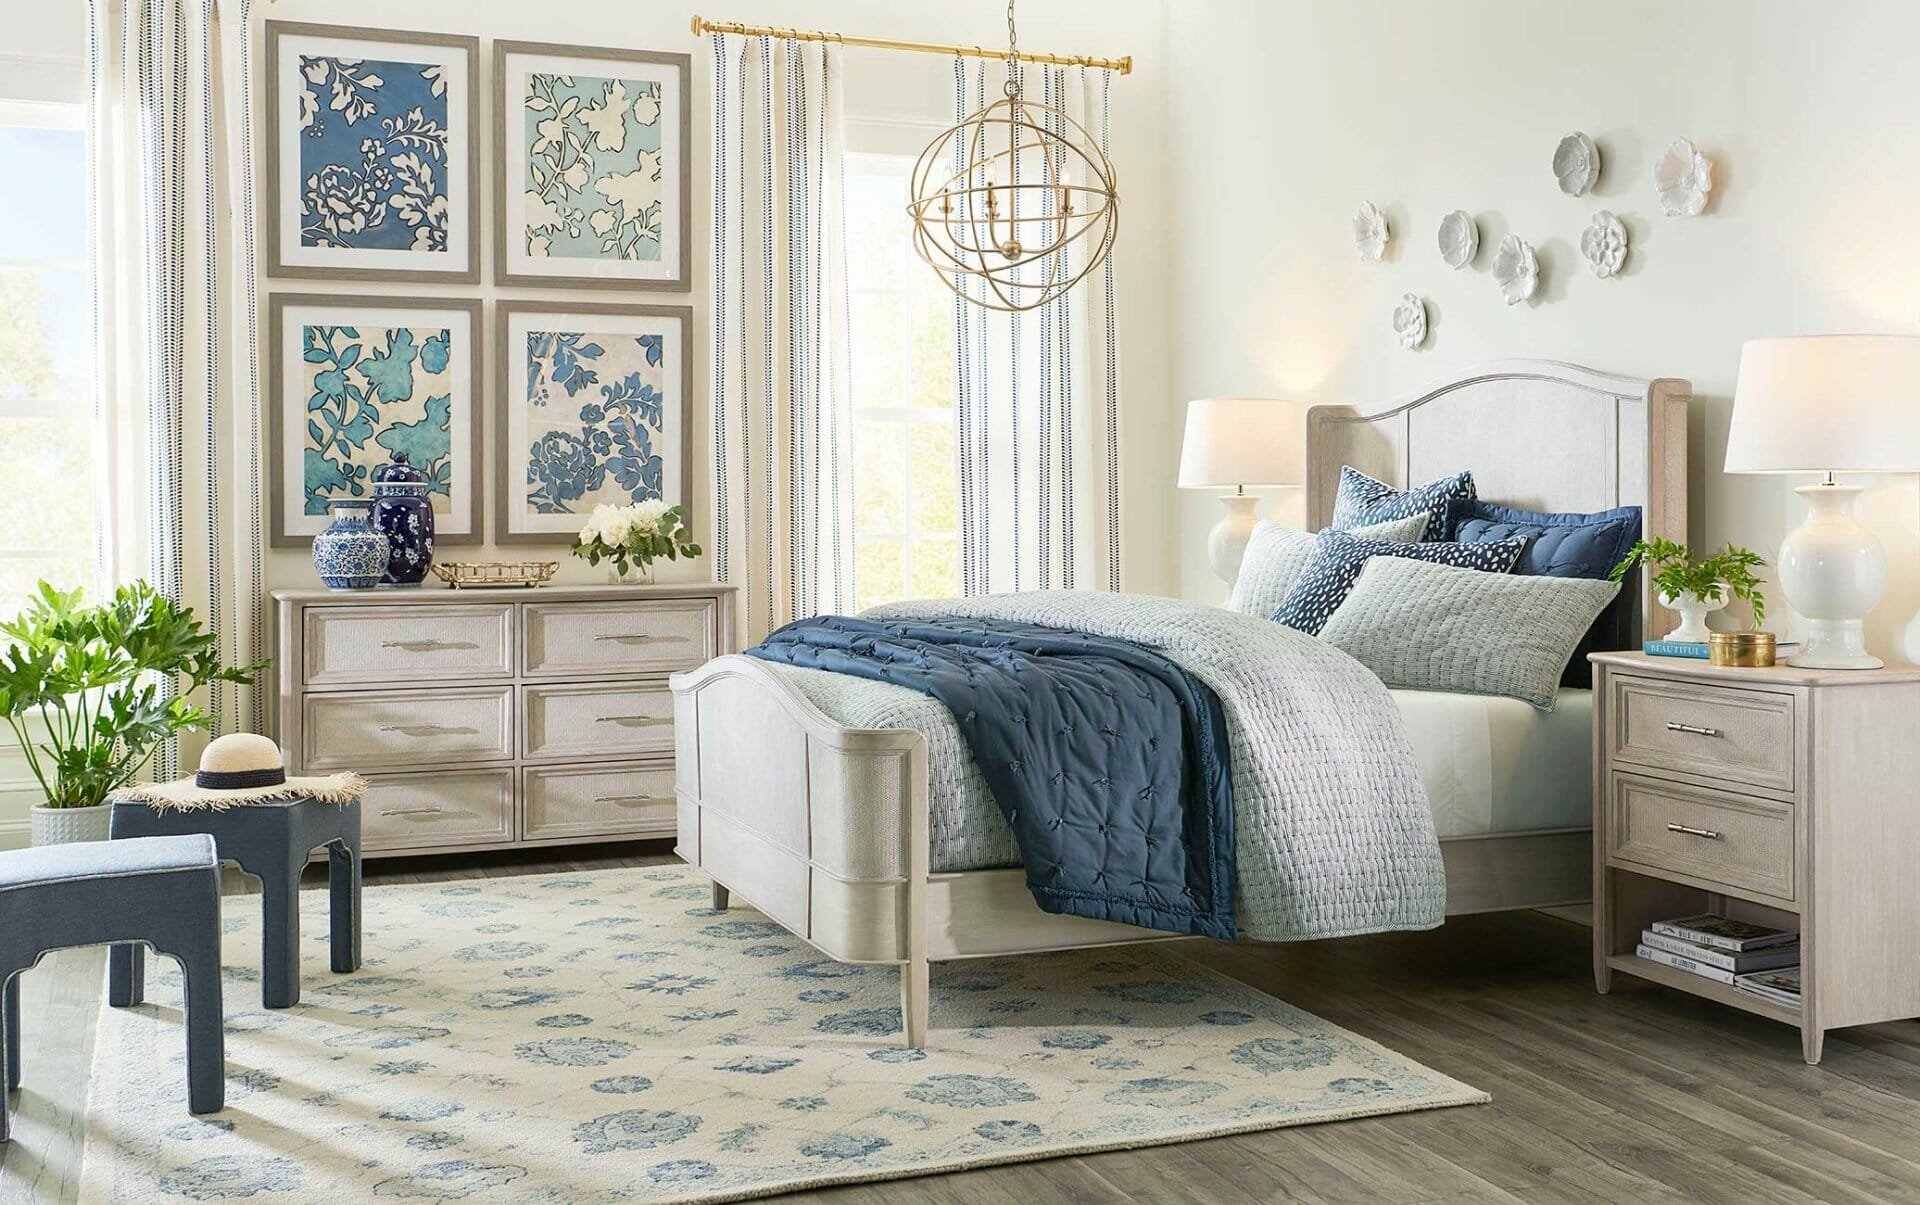 ballard bedroom furniture inspiration